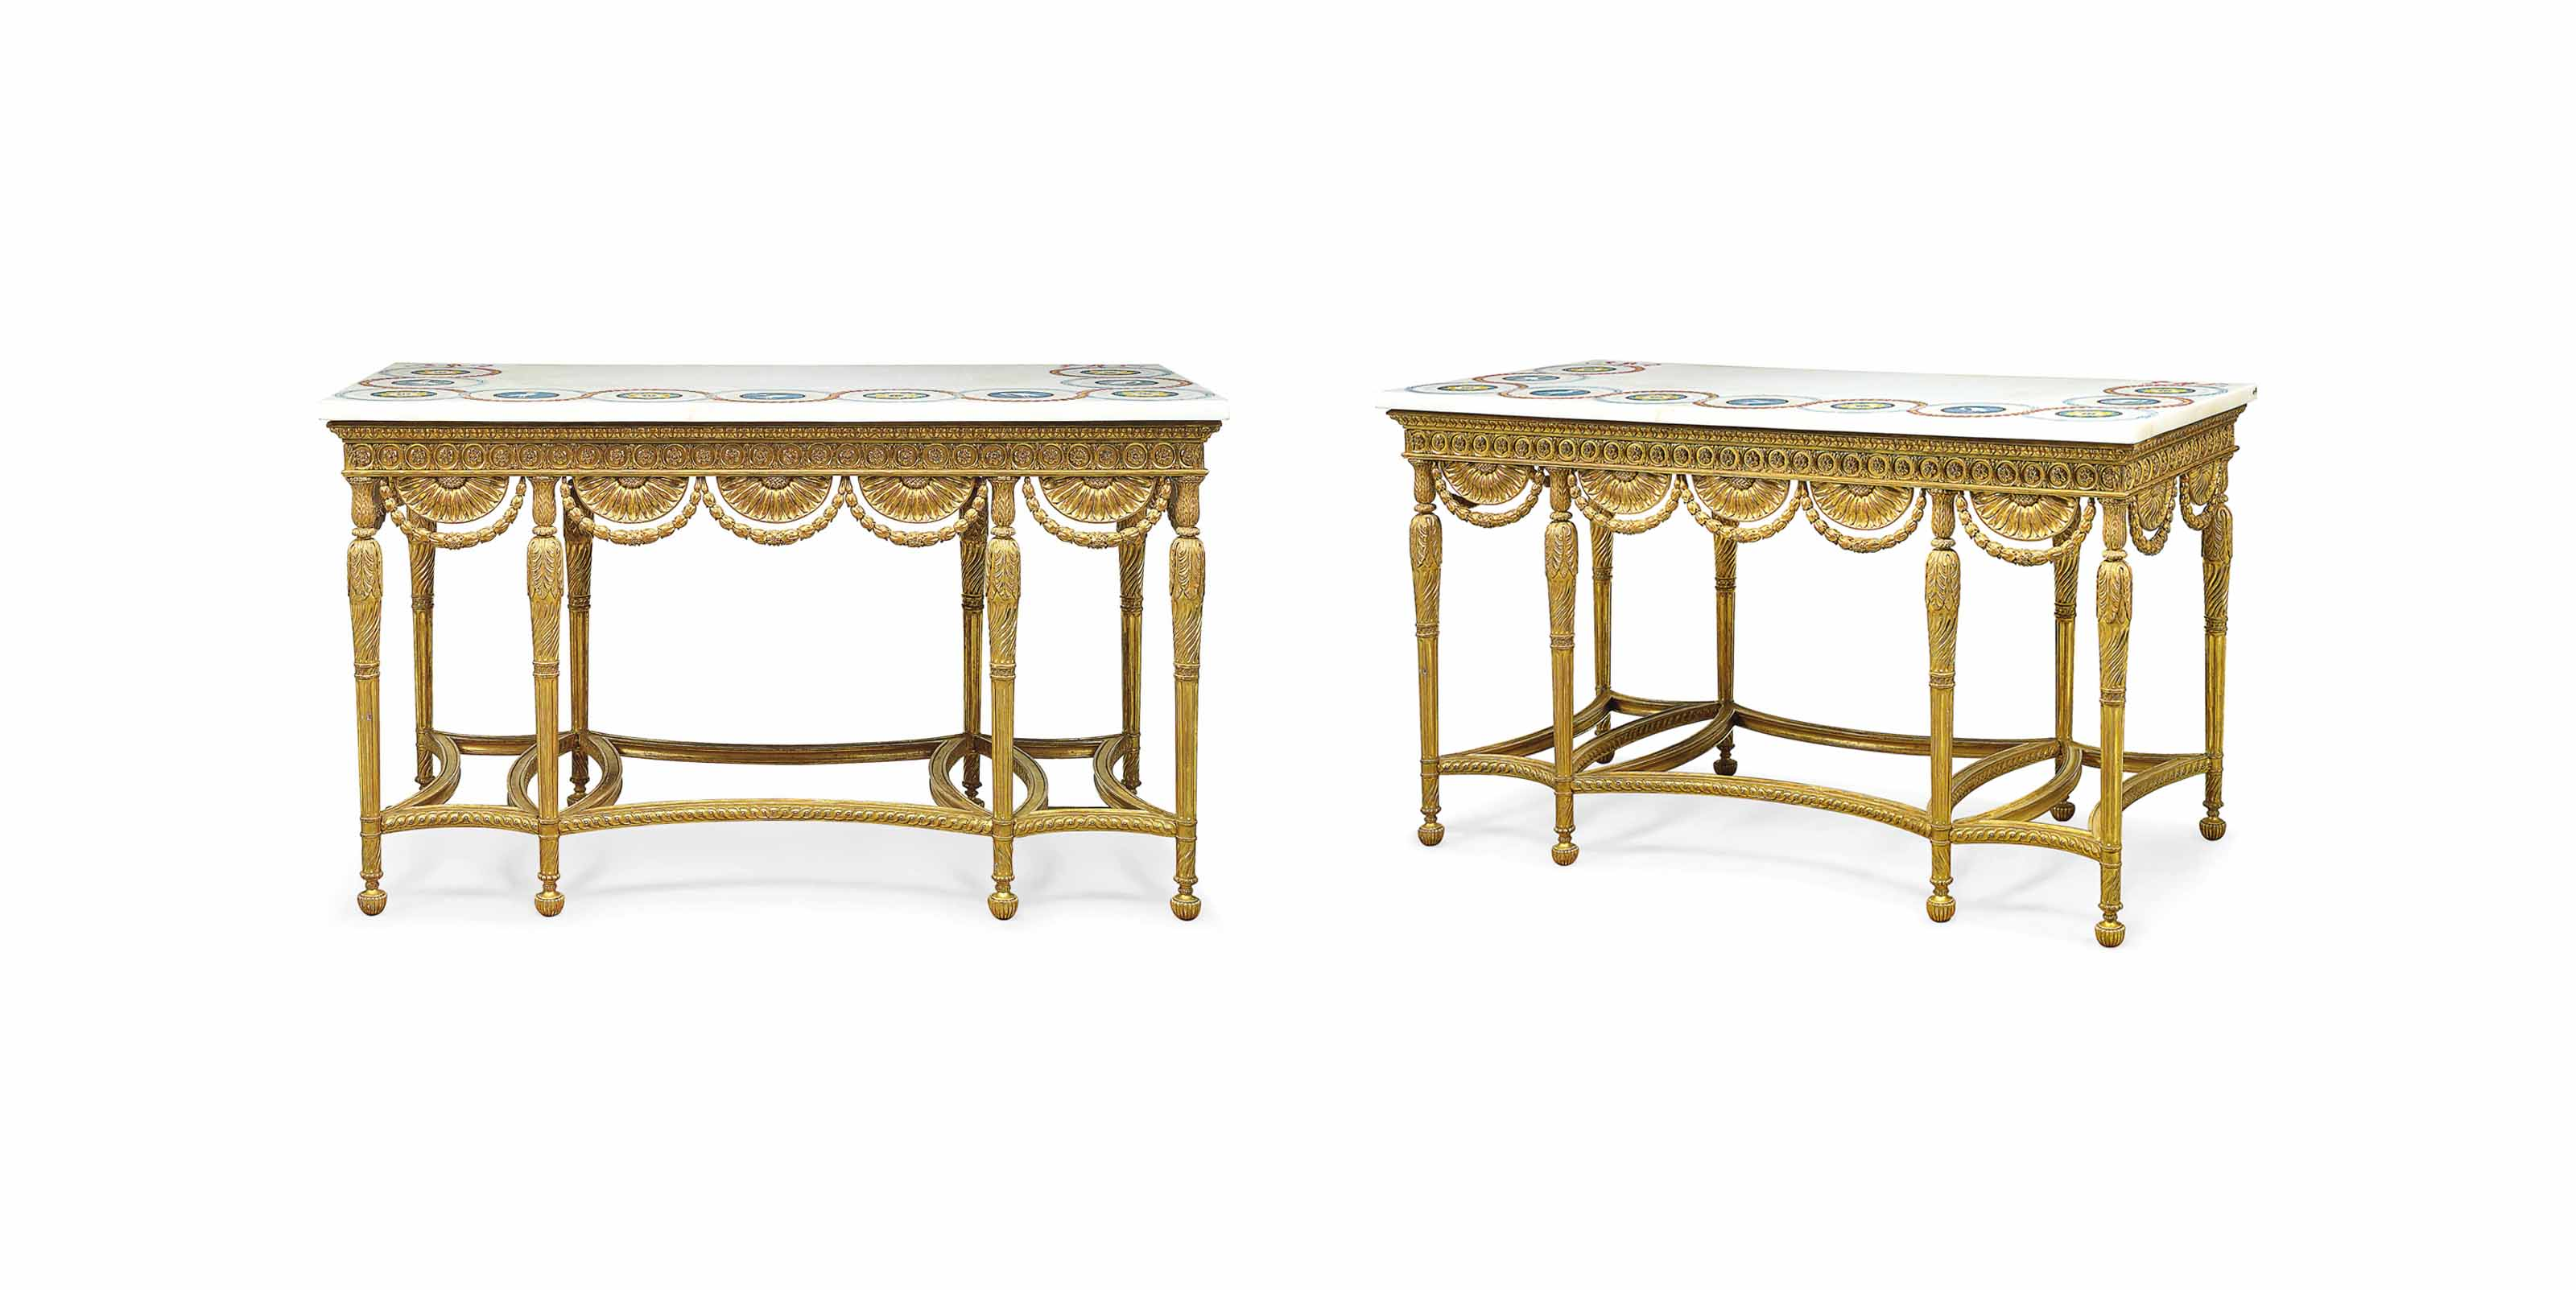 A PAIR OF GEORGE III GILTWOOD, SCAGLIOLA AND WHITE MARBLE PIER-TABLES